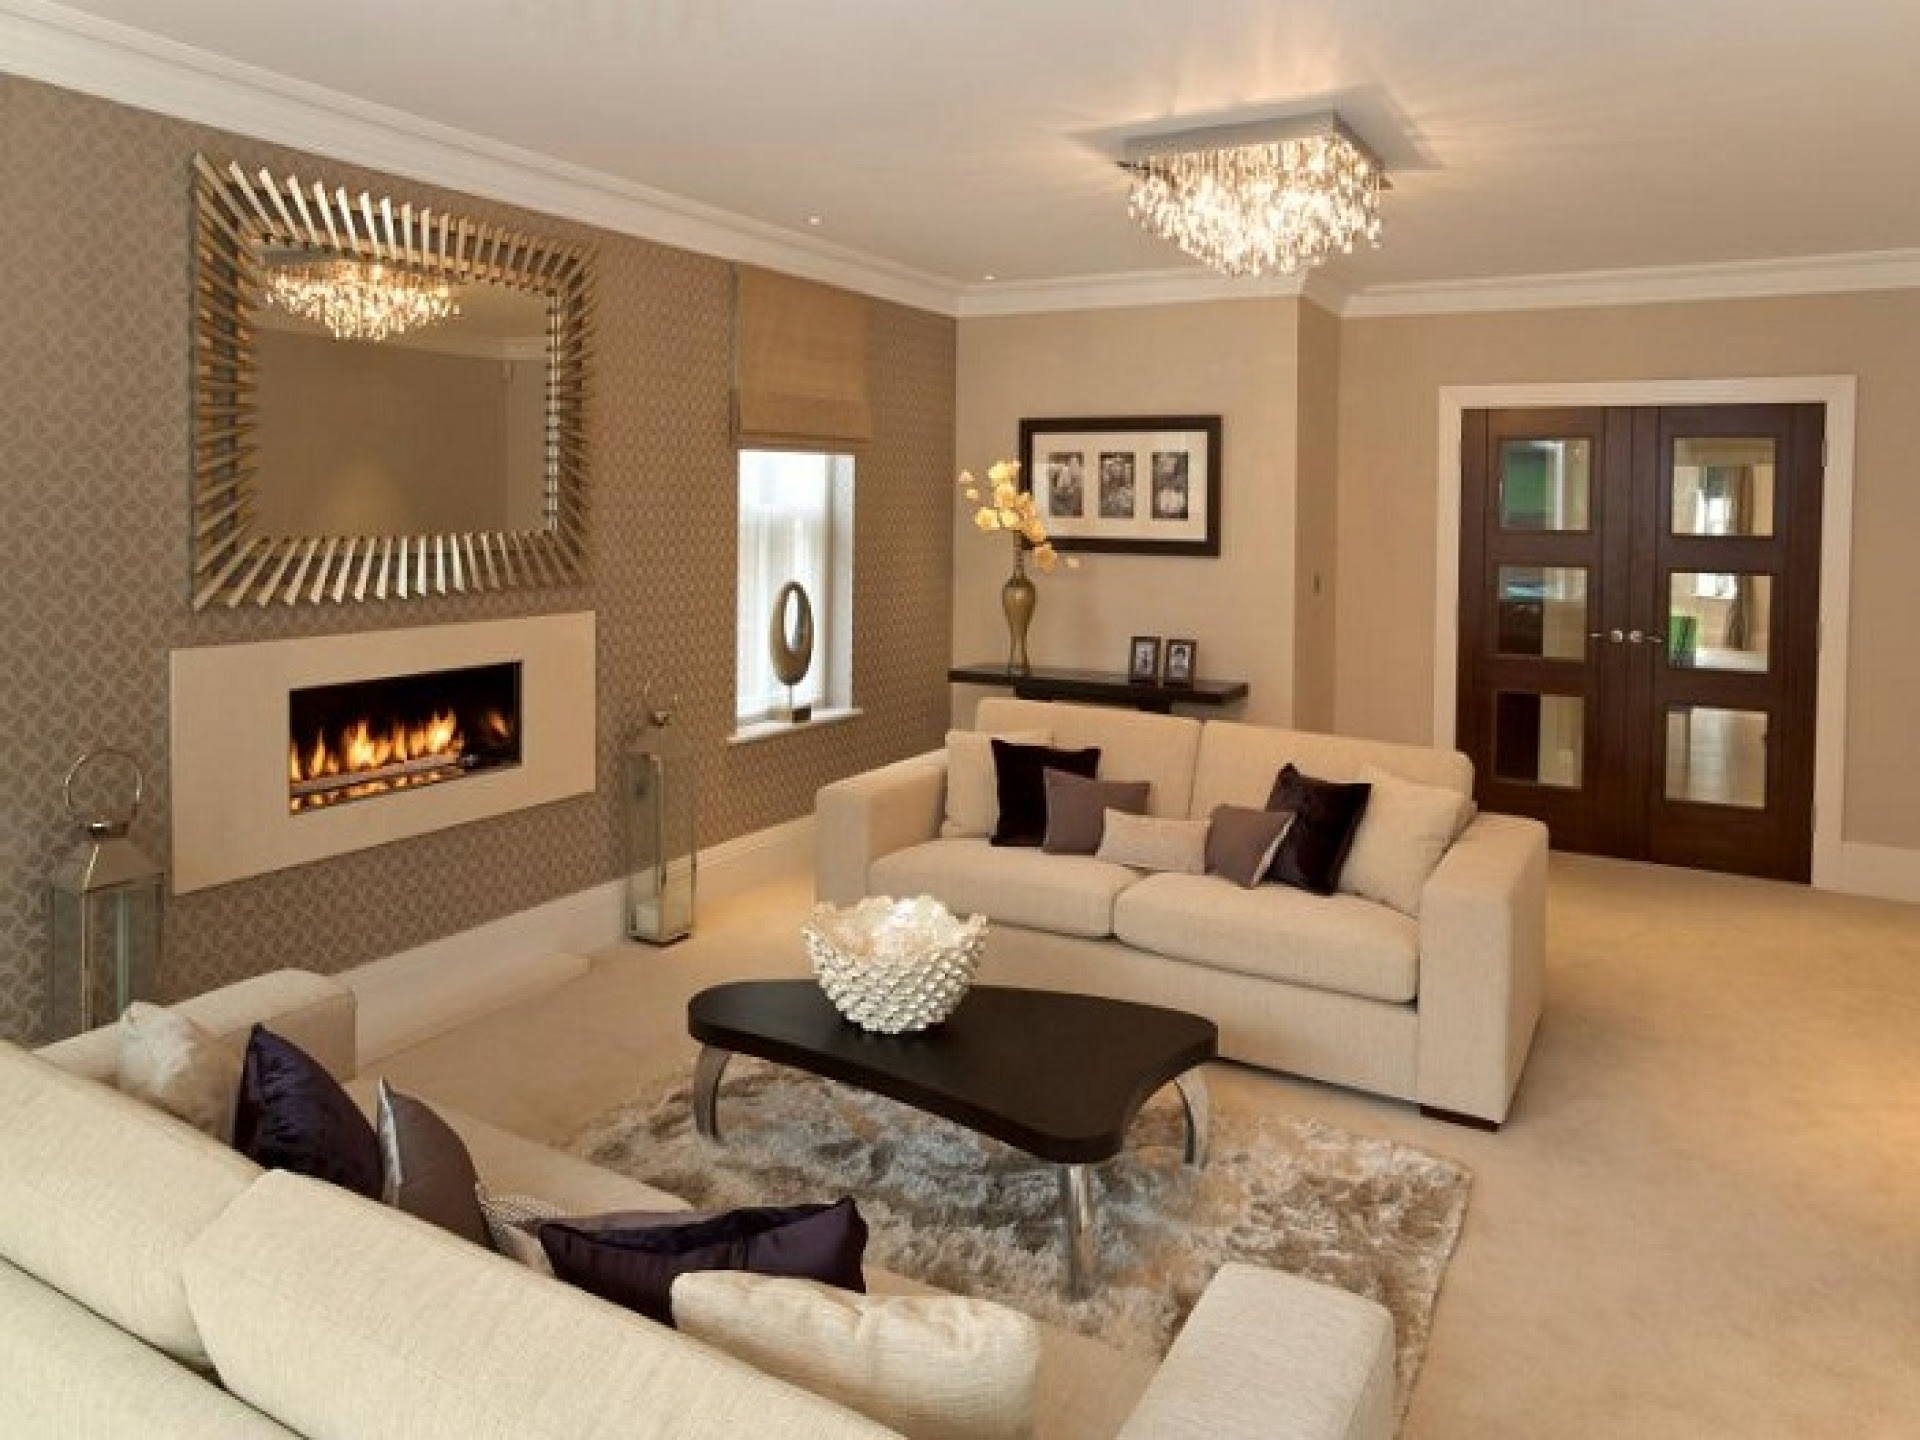 15 EXCLUSIVE LIVING ROOM IDEAS FOR THE PERFECT HOME ...